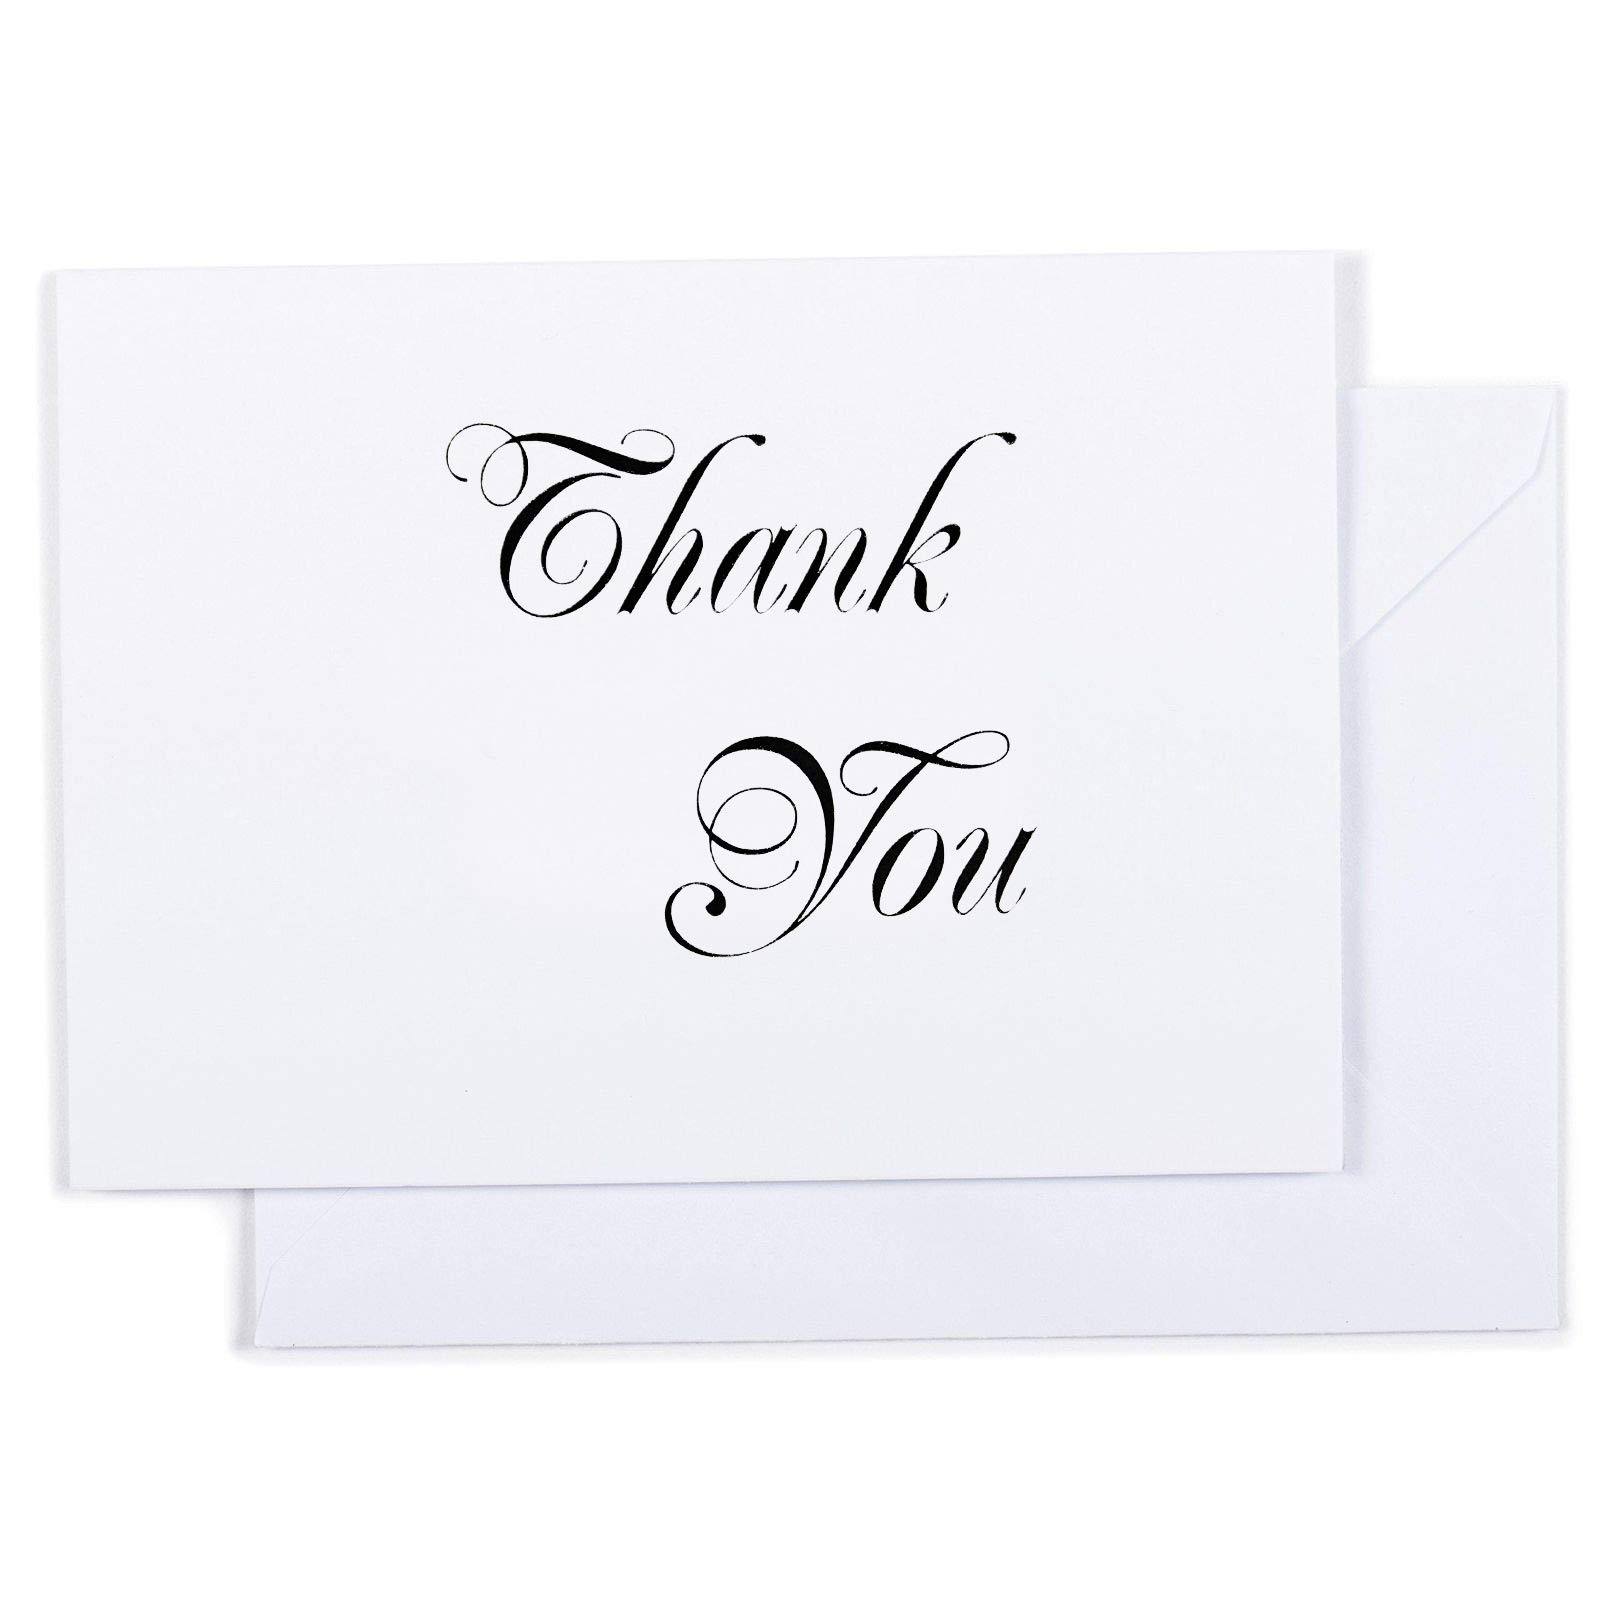 Thank you cards - 100 count letterpress cards with white envelopes.Perfect for personal and business/office use (black and white)